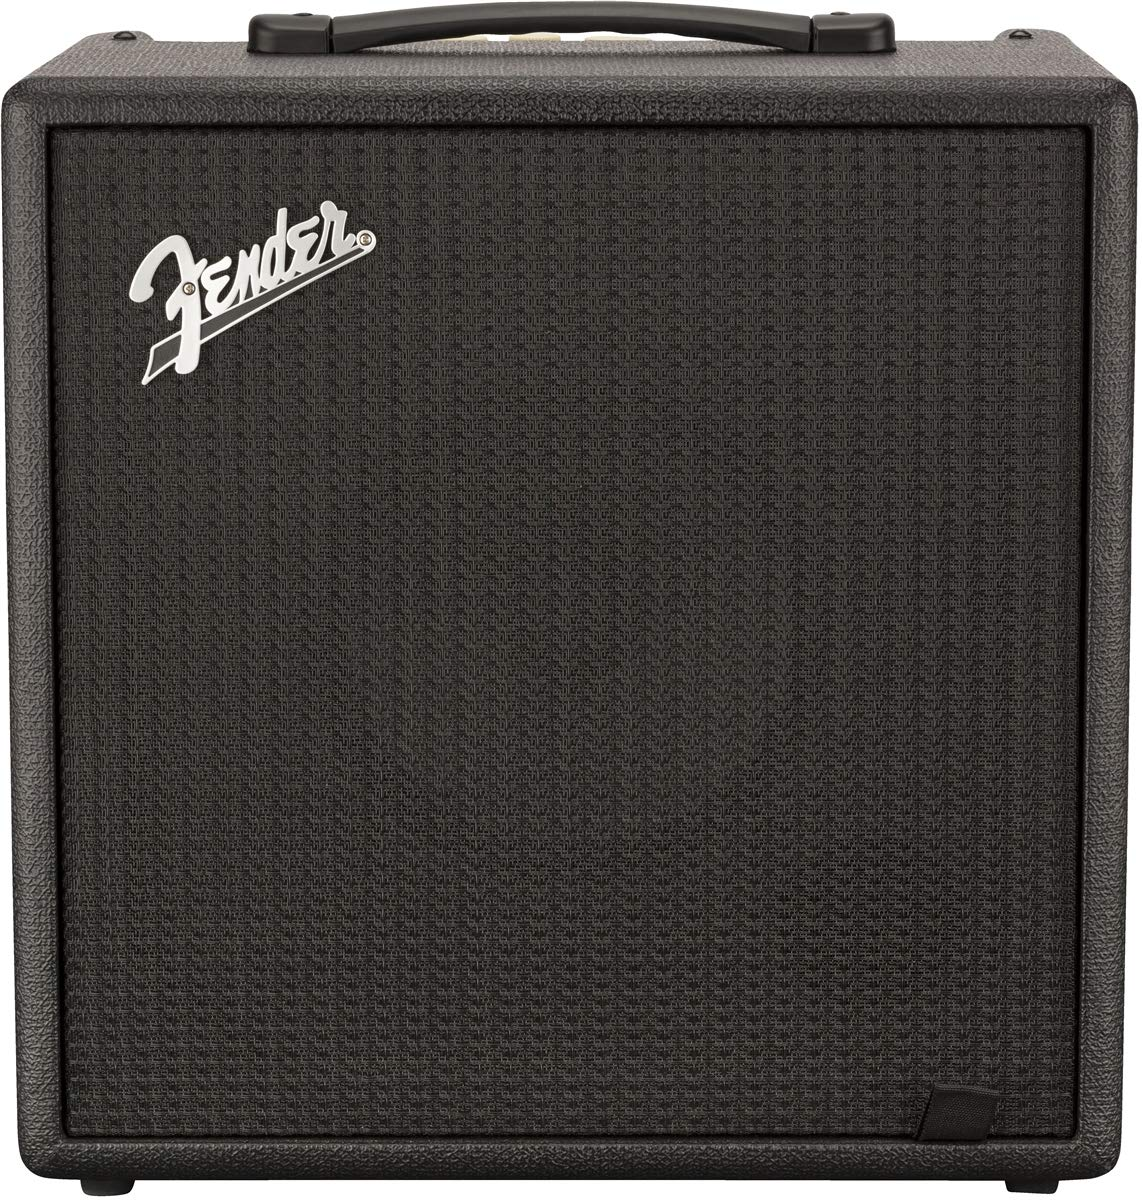 Fender Rumble LT-25 - Digital Electric Bass Guitar Amplifier